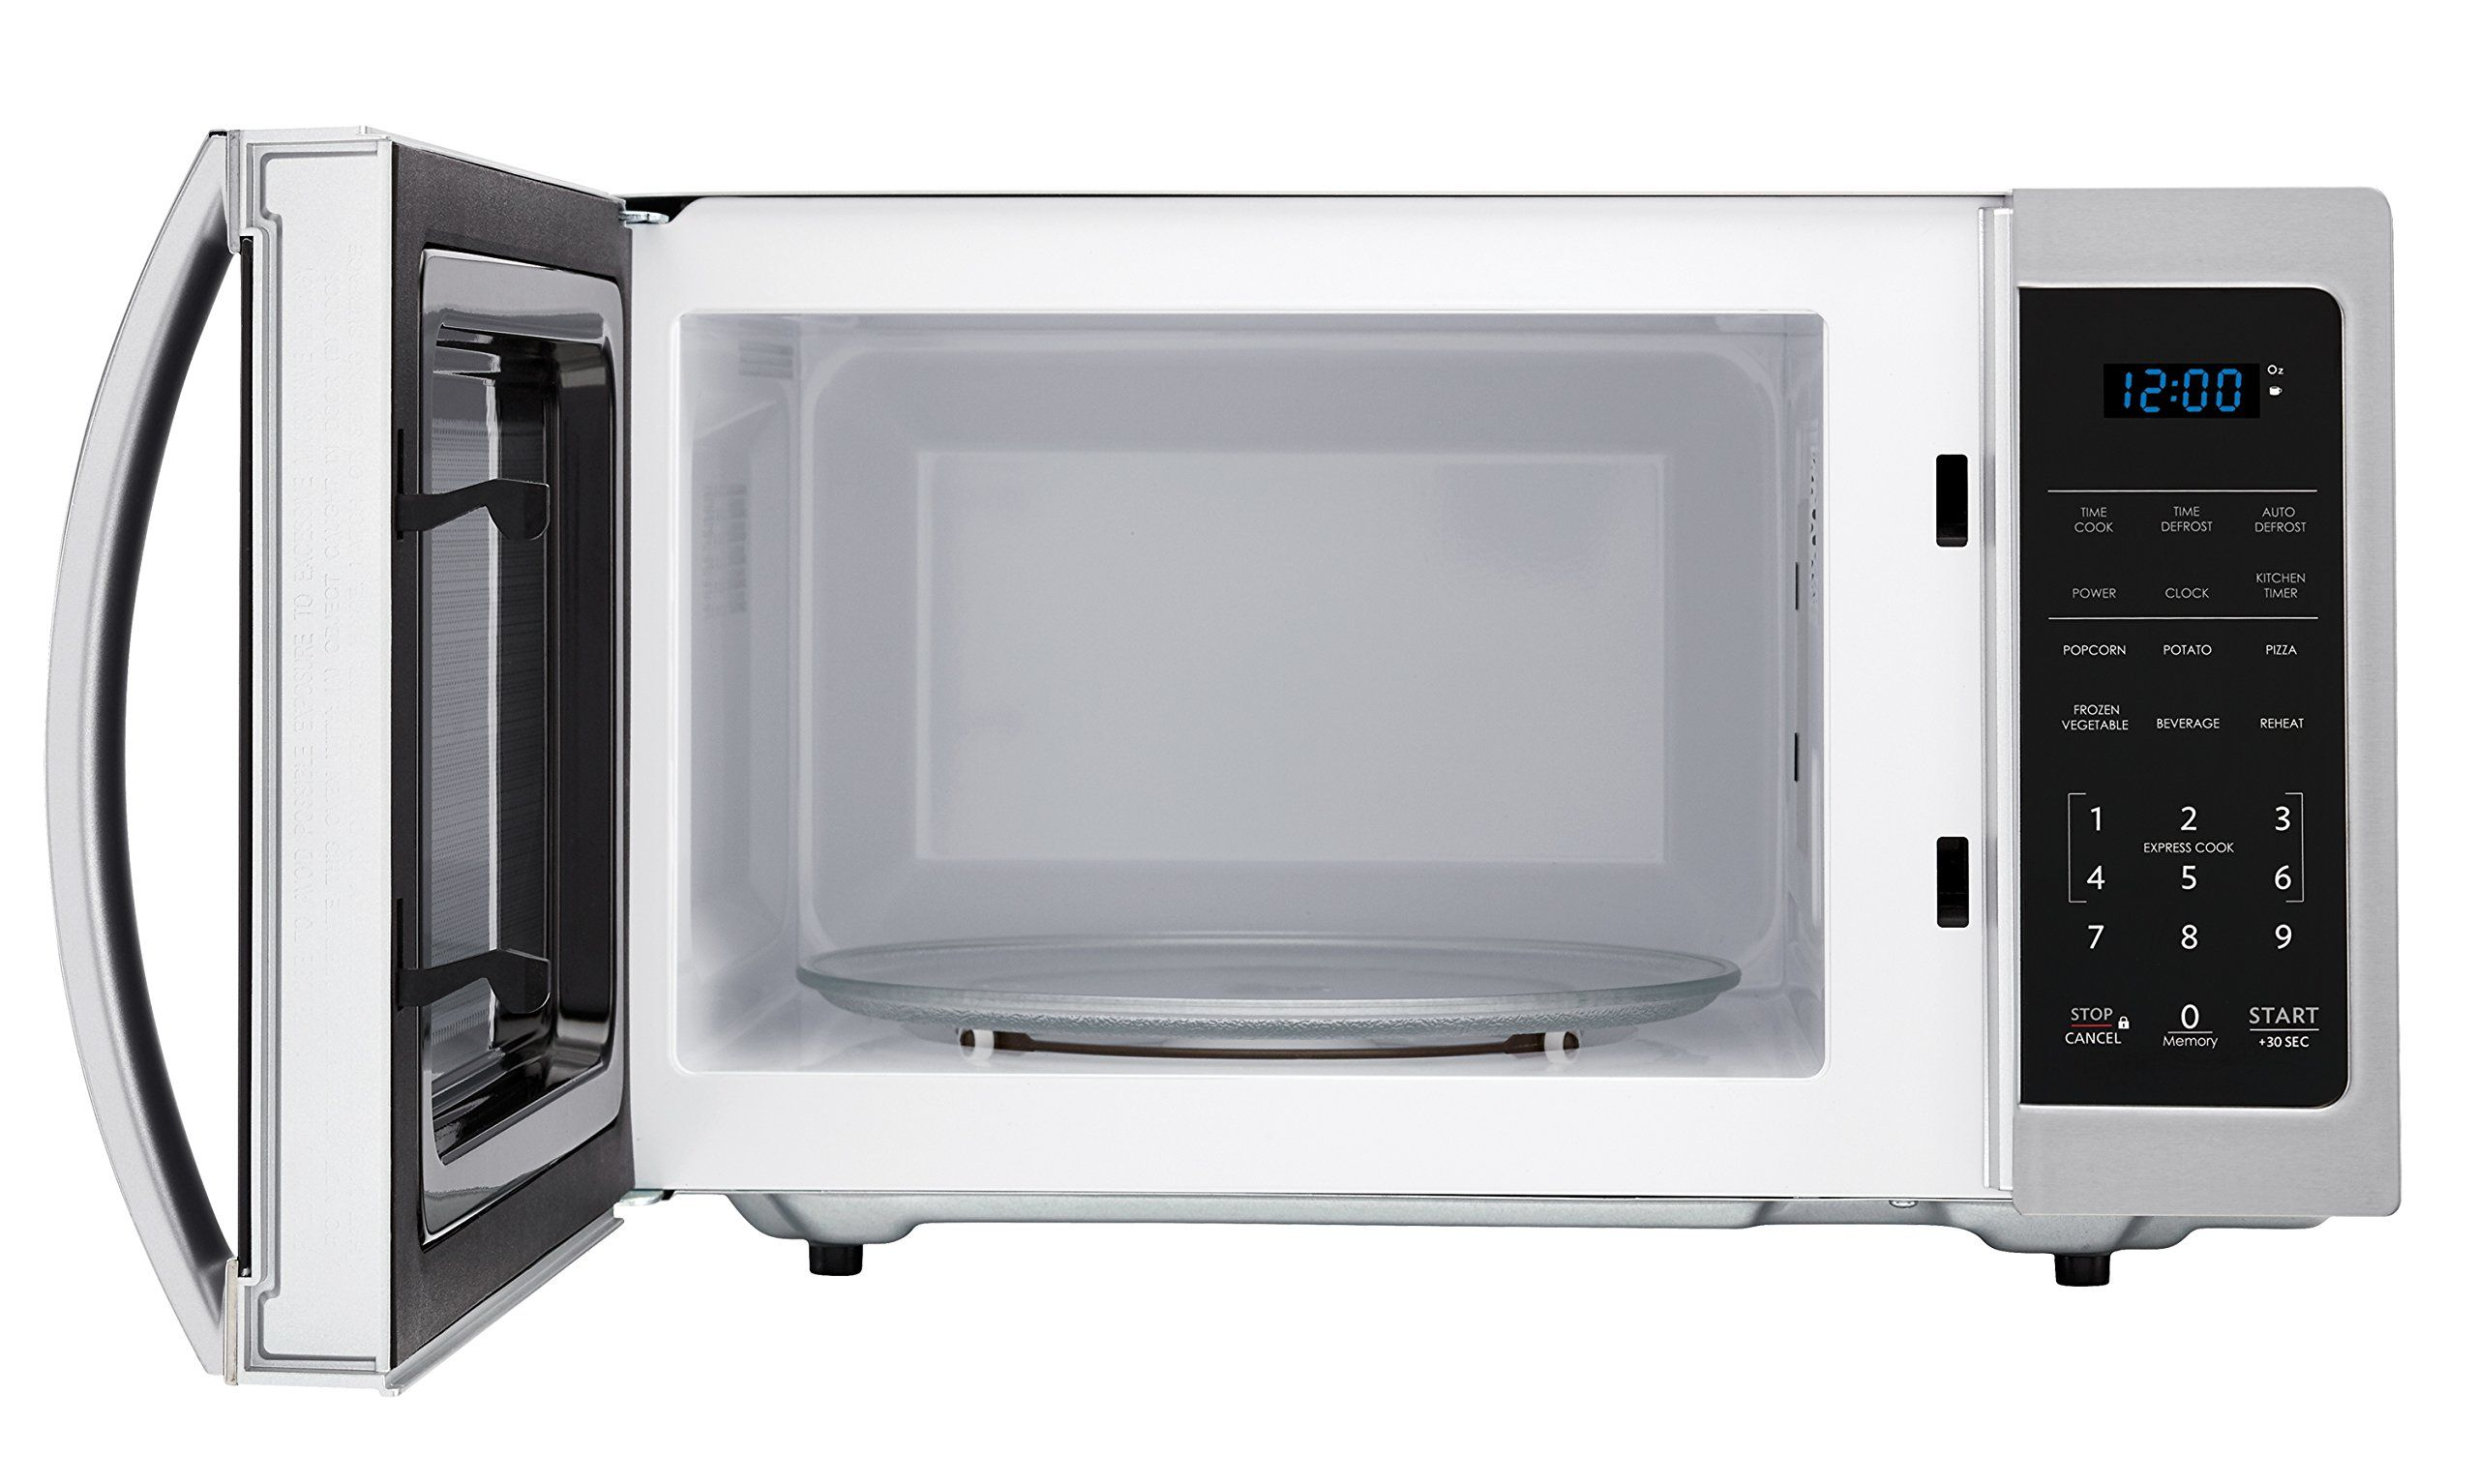 Sharp Microwaves Zsmc0912bs Sharp 900w Countertop Microwave Oven 0 9 Cubic Foot Stainless Steel Countertop Microwave Oven Sharp Microwave Countertop Microwave